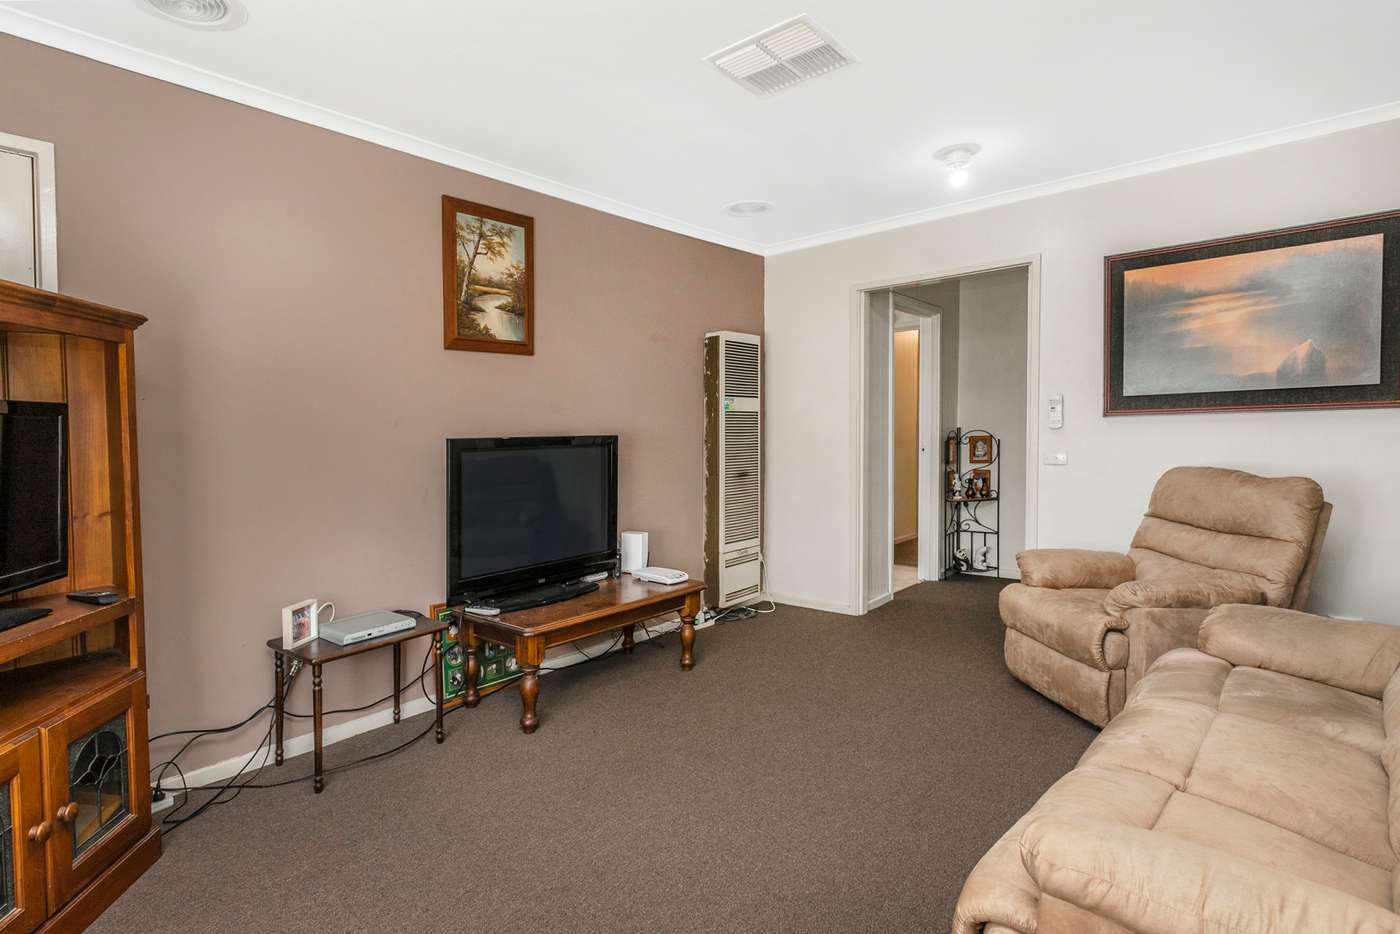 Fifth view of Homely house listing, 9 Barnes Crescent, Sunshine West VIC 3020